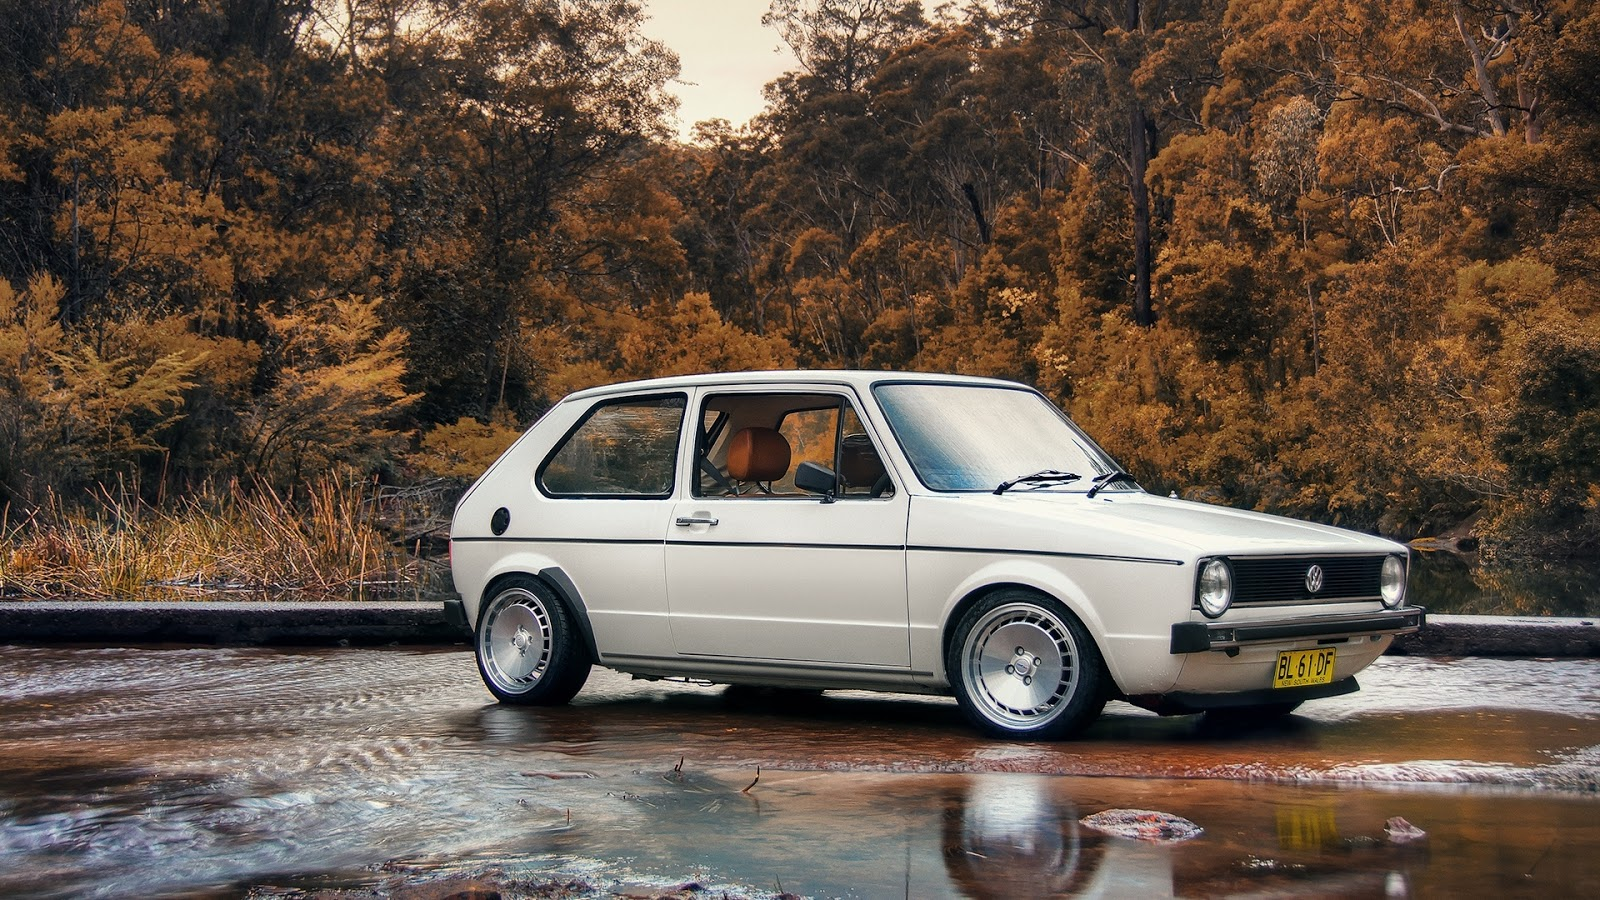 Vw Golf Mk1 Mystery Wallpaper